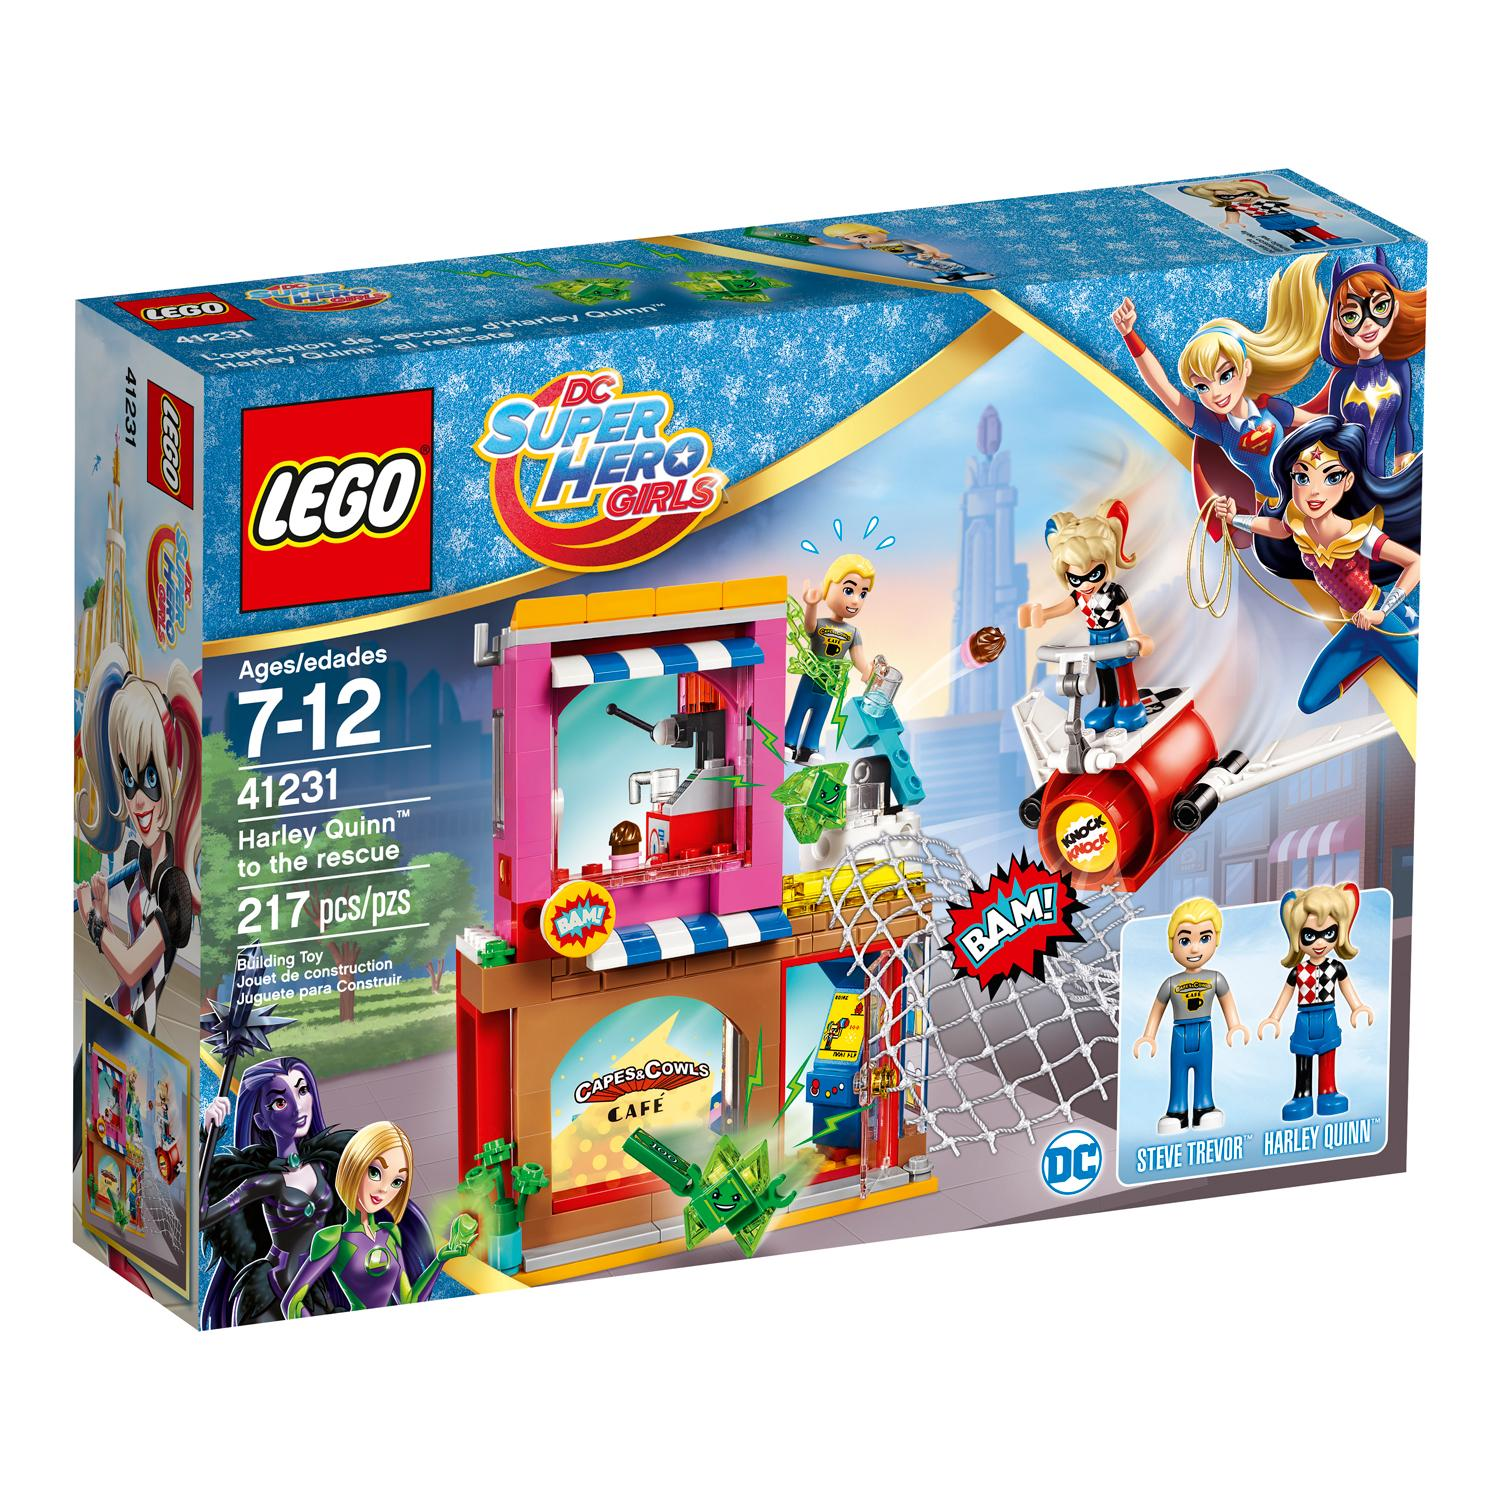 Lego Toys For Girls : Amazon lego dc super hero girls harley quinn to